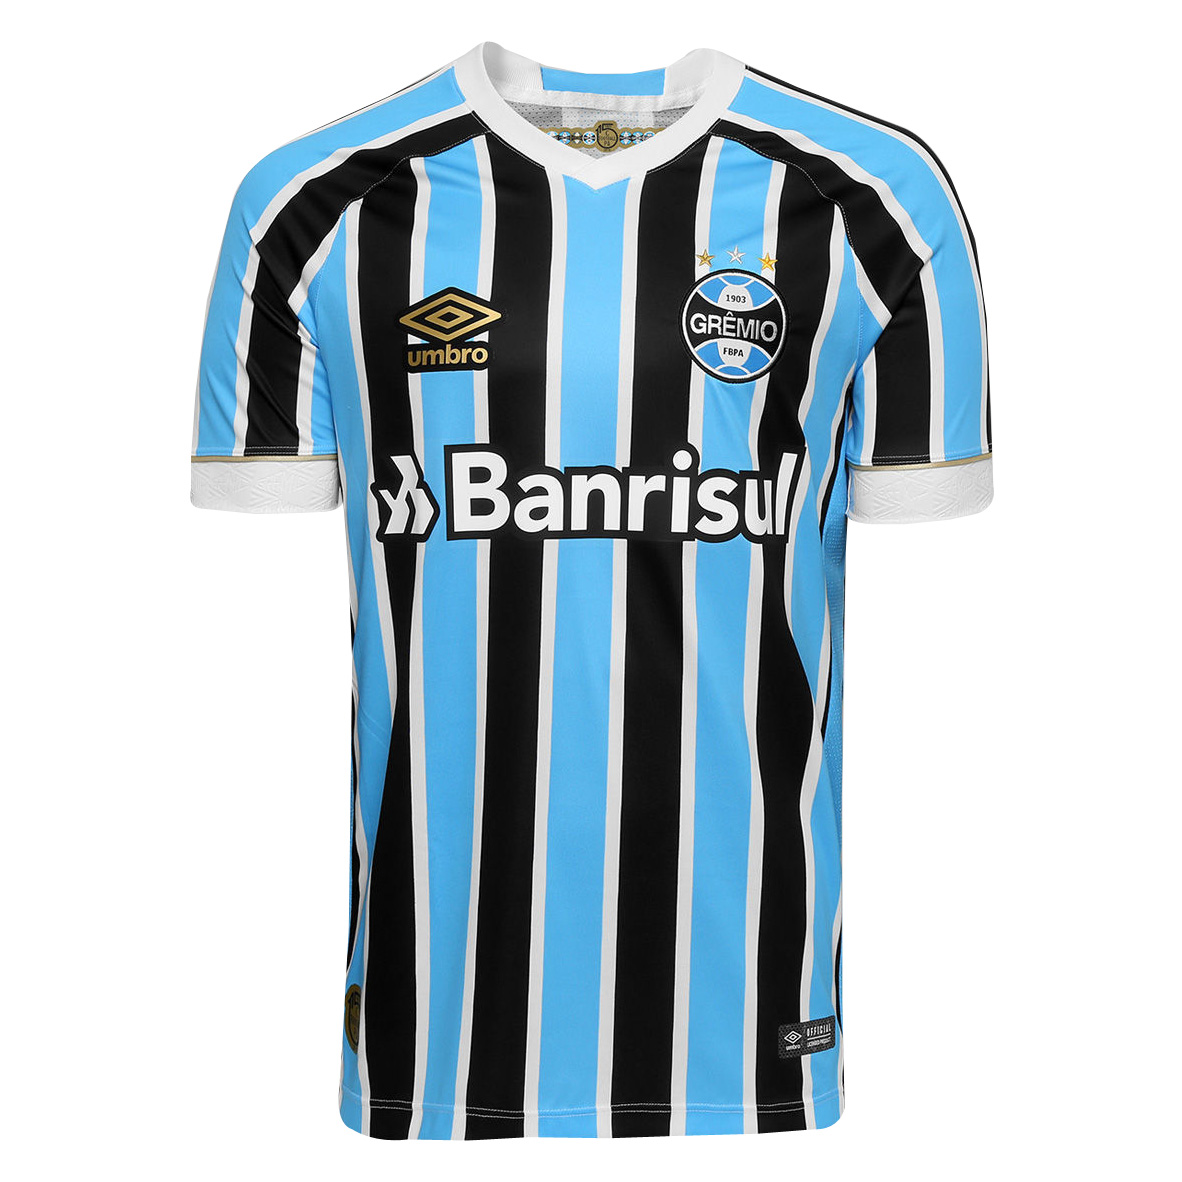 Grêmio FBPA Soccer Jersey 2018-19 Home Football Shirt